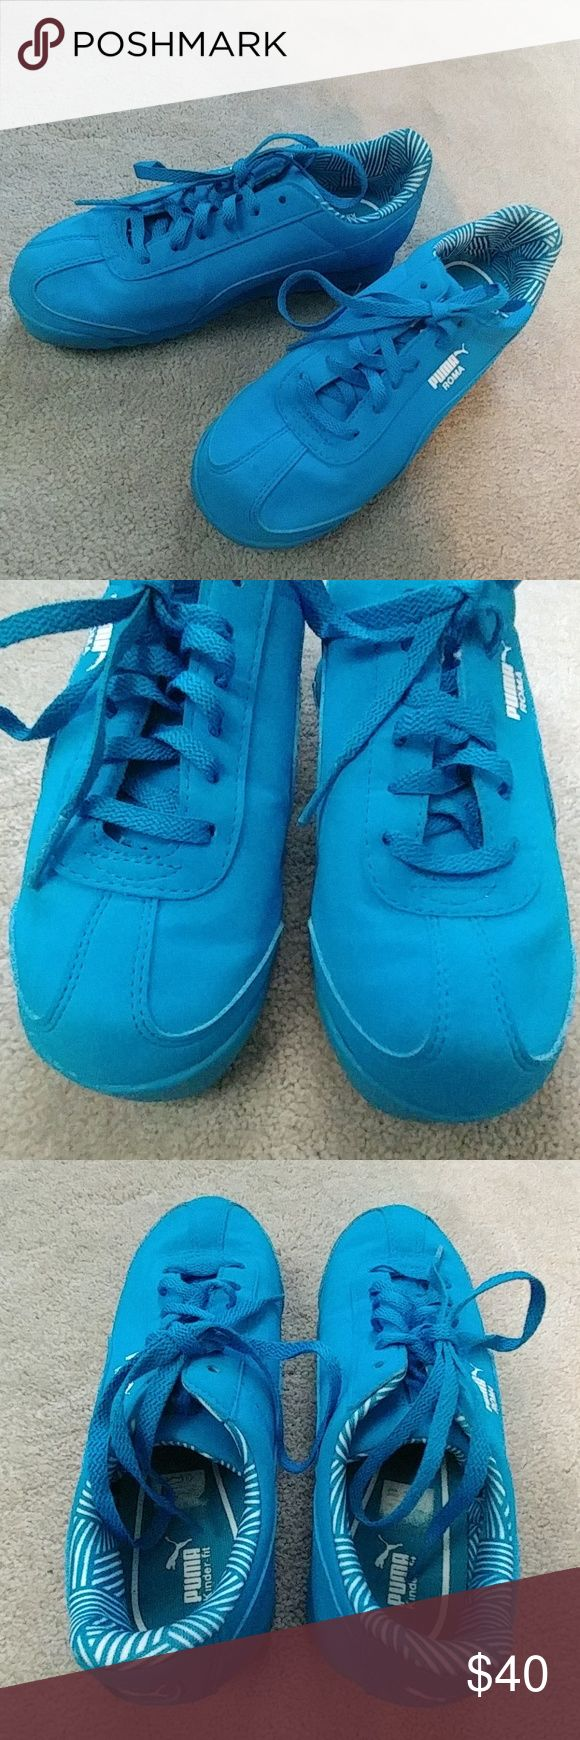 Like new! Blue Puma Sneakers Awesome sneakers for soccer or everyday! All blue, excellent like new condition from a smoke and pet free home No damage flaws or defects My son wore these on the first day of school (2nd grade), to school only and that was it! What a waste... no box Puma Shoes Sneakers